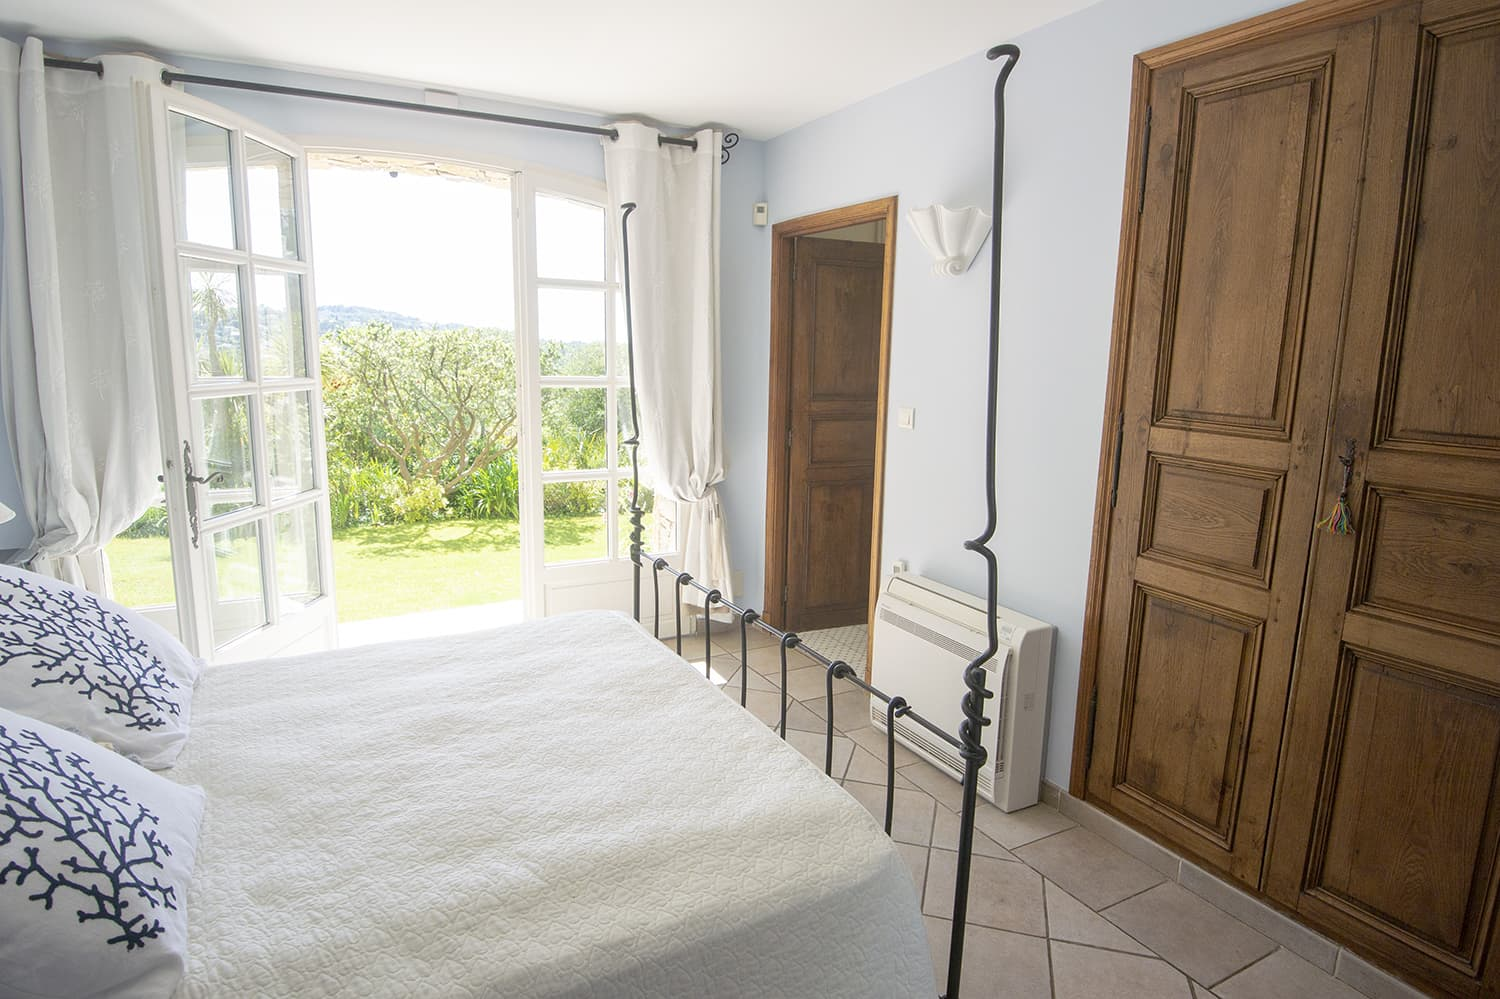 Bedroom in Valbonne, Provence-Alpes-Côte d'Azur holiday villa